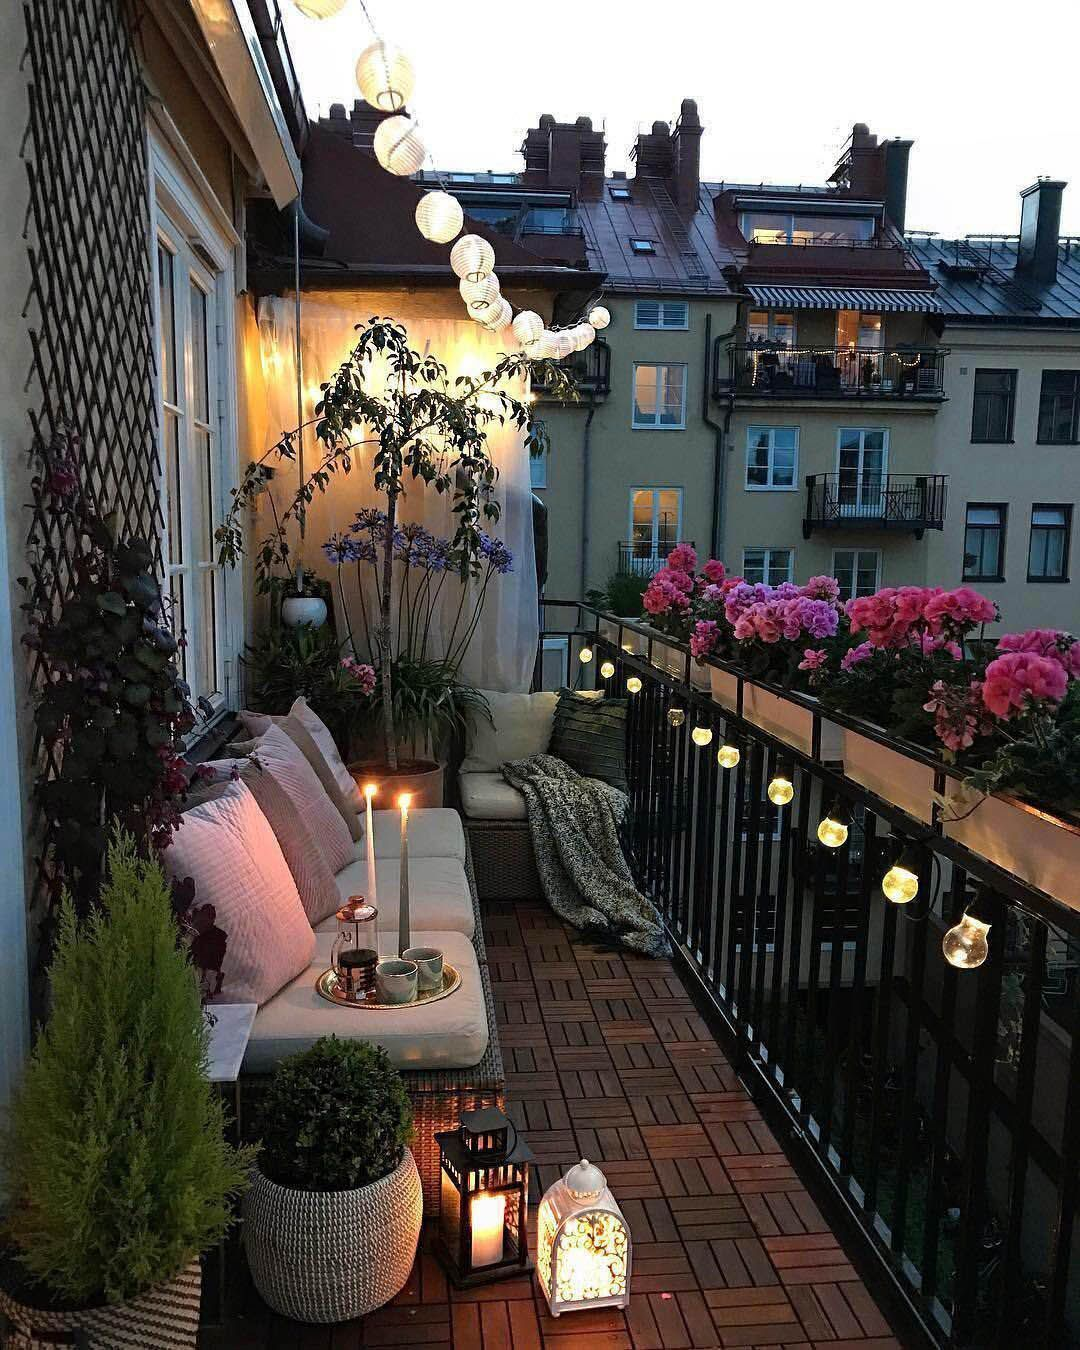 Find Balcony Ideas Closed To Inspire You Apartment Balcony Garden Small Balcony Garden Small Balcony Decor